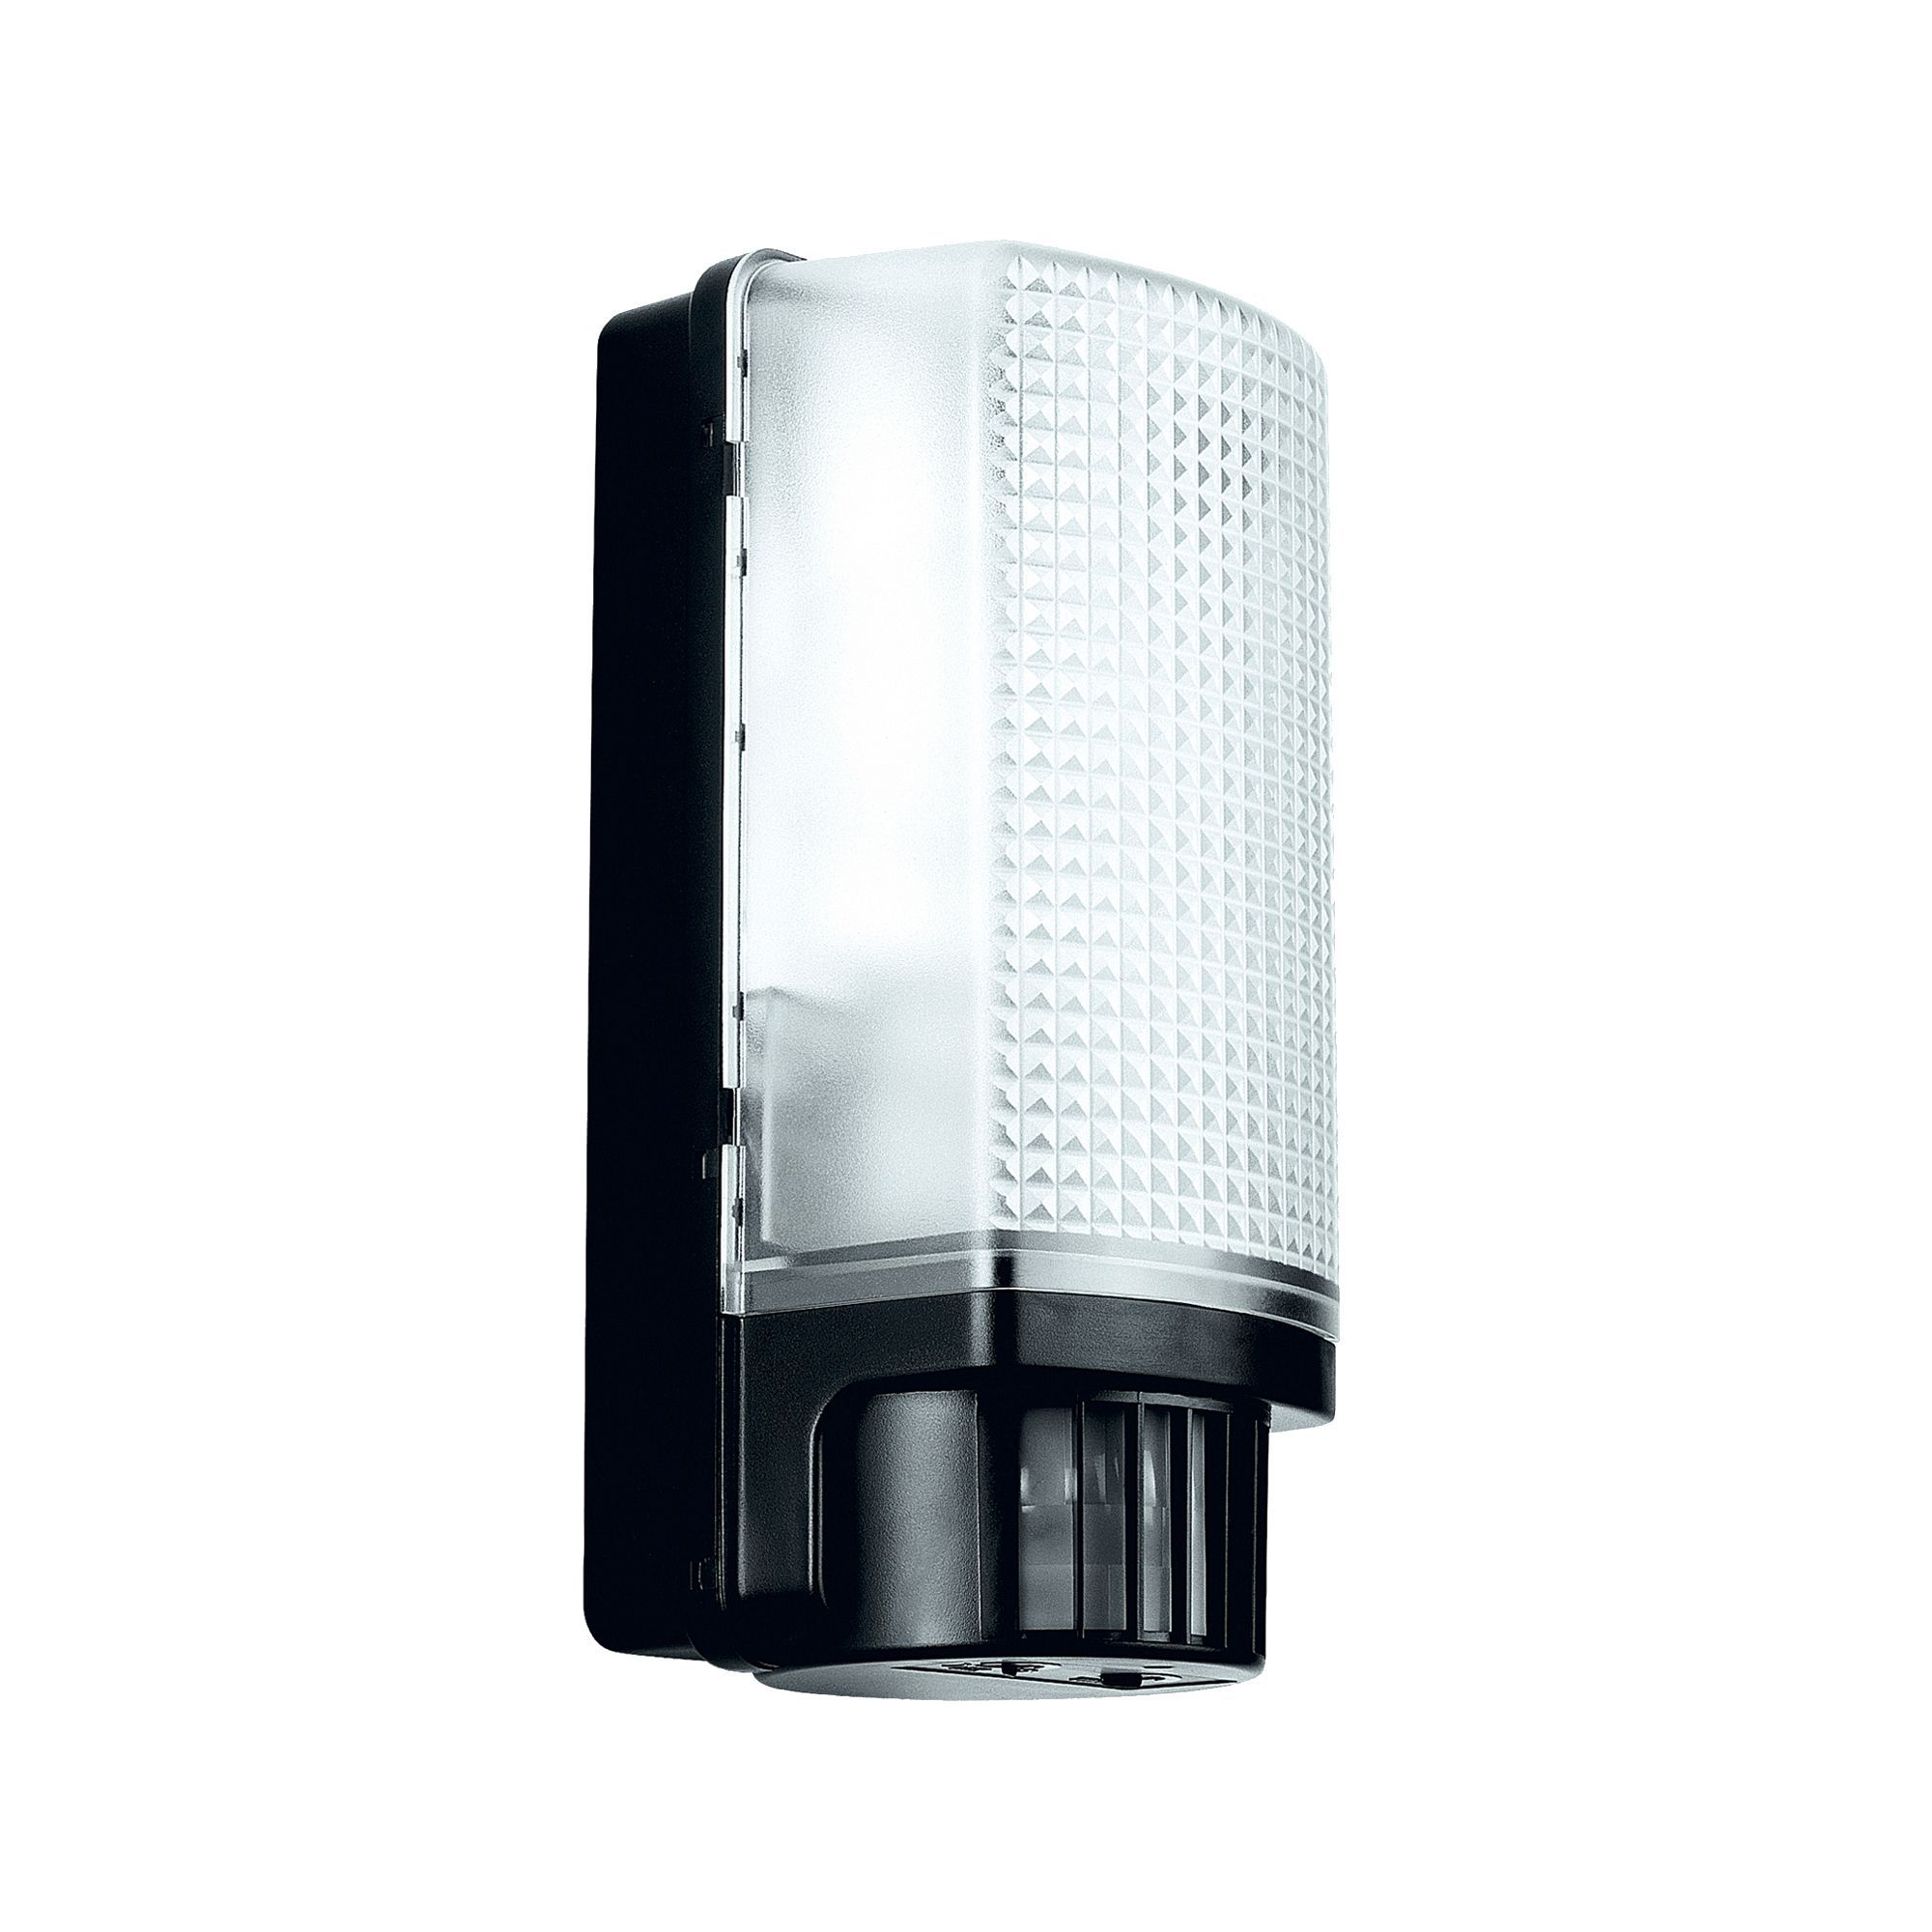 Blooma Larcia Black 60w Mains Powered External Pir Bulkhead Wall Light